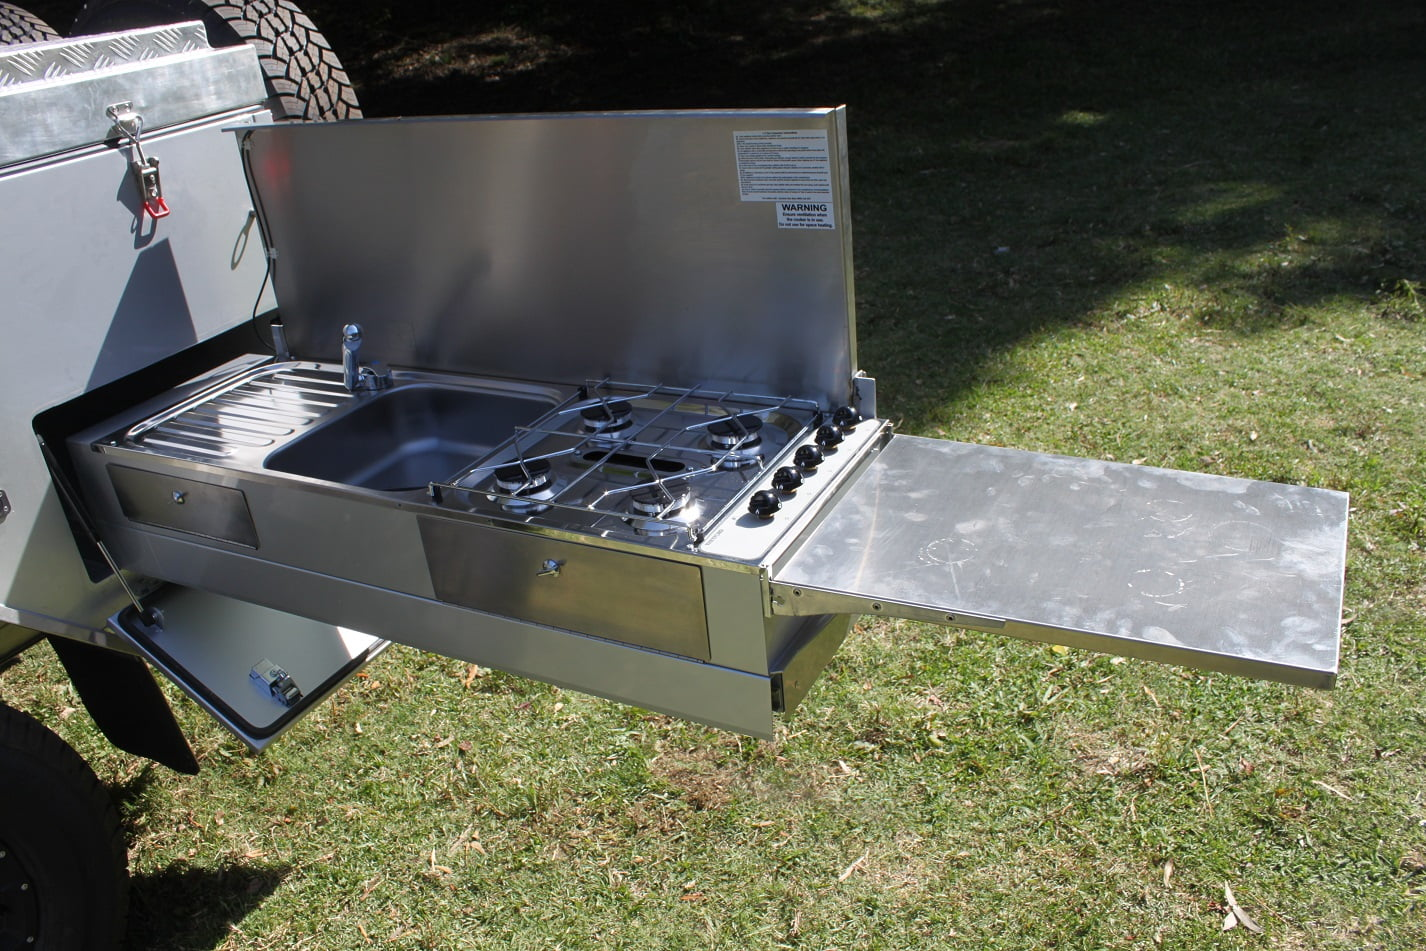 Camper Trailer Kitchen Ff1 The Easiest Forward Fold Camper Available Offroad Tour King